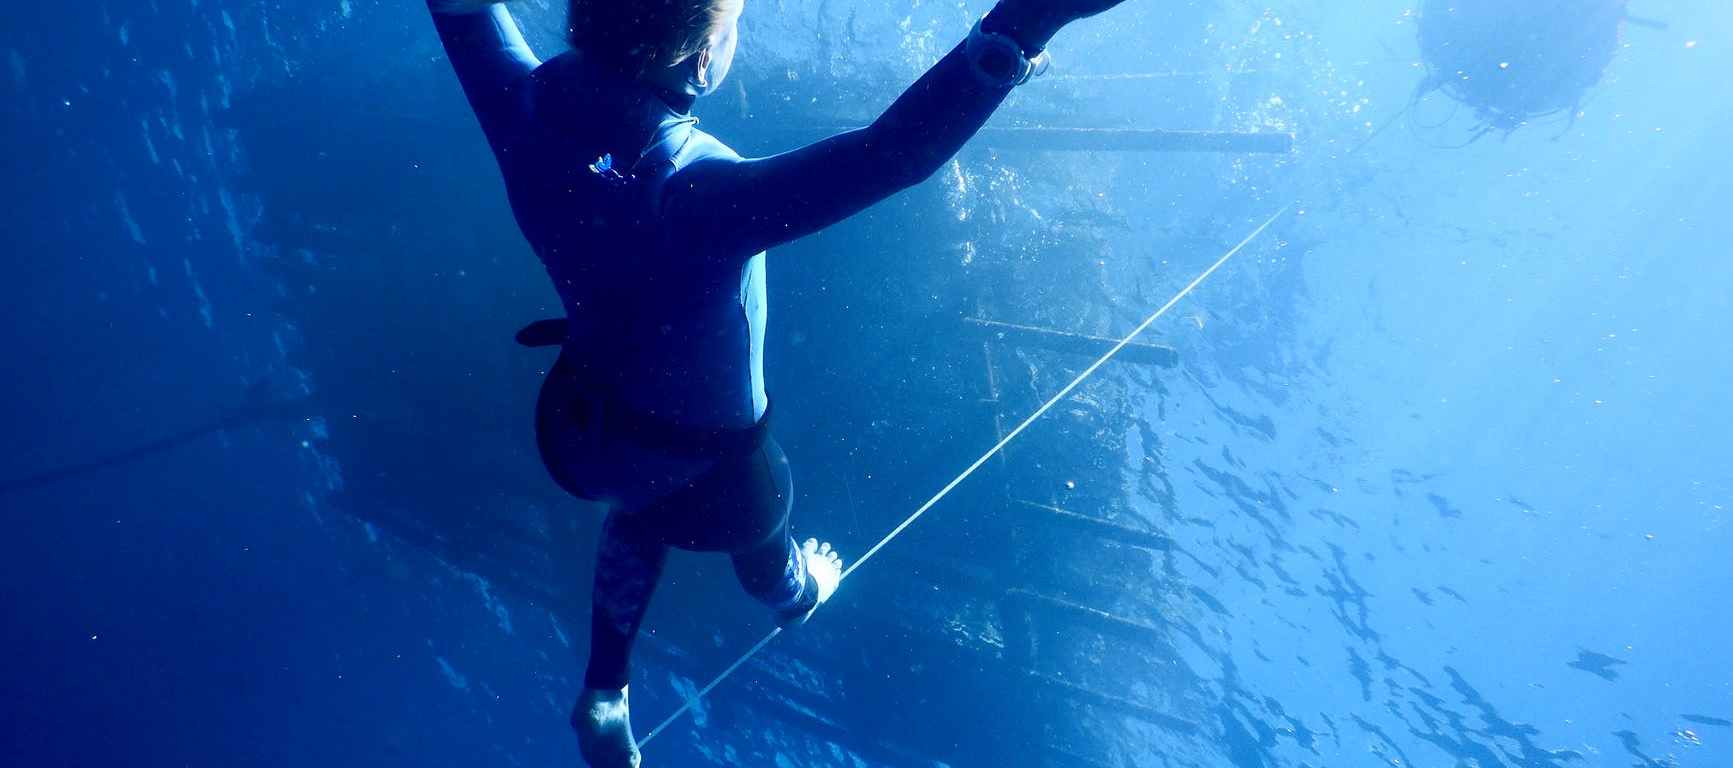 anonymous woman diving underwater of blue sea